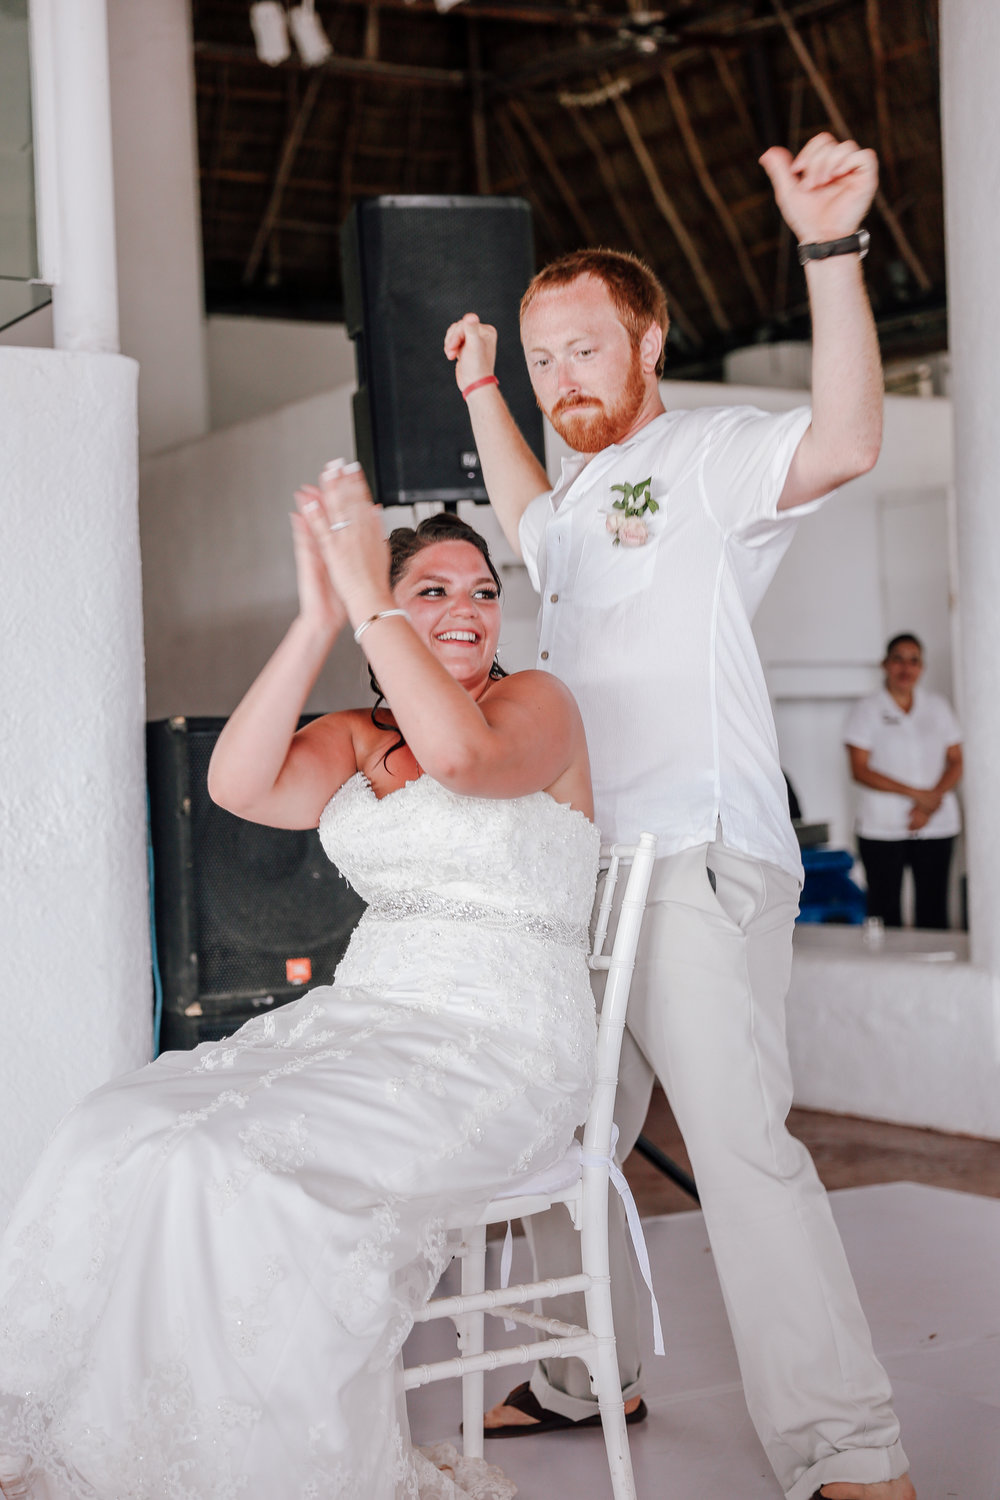 Tiffany and Ryan - Puerto Vallarta Wedding Photographer - 83.jpg